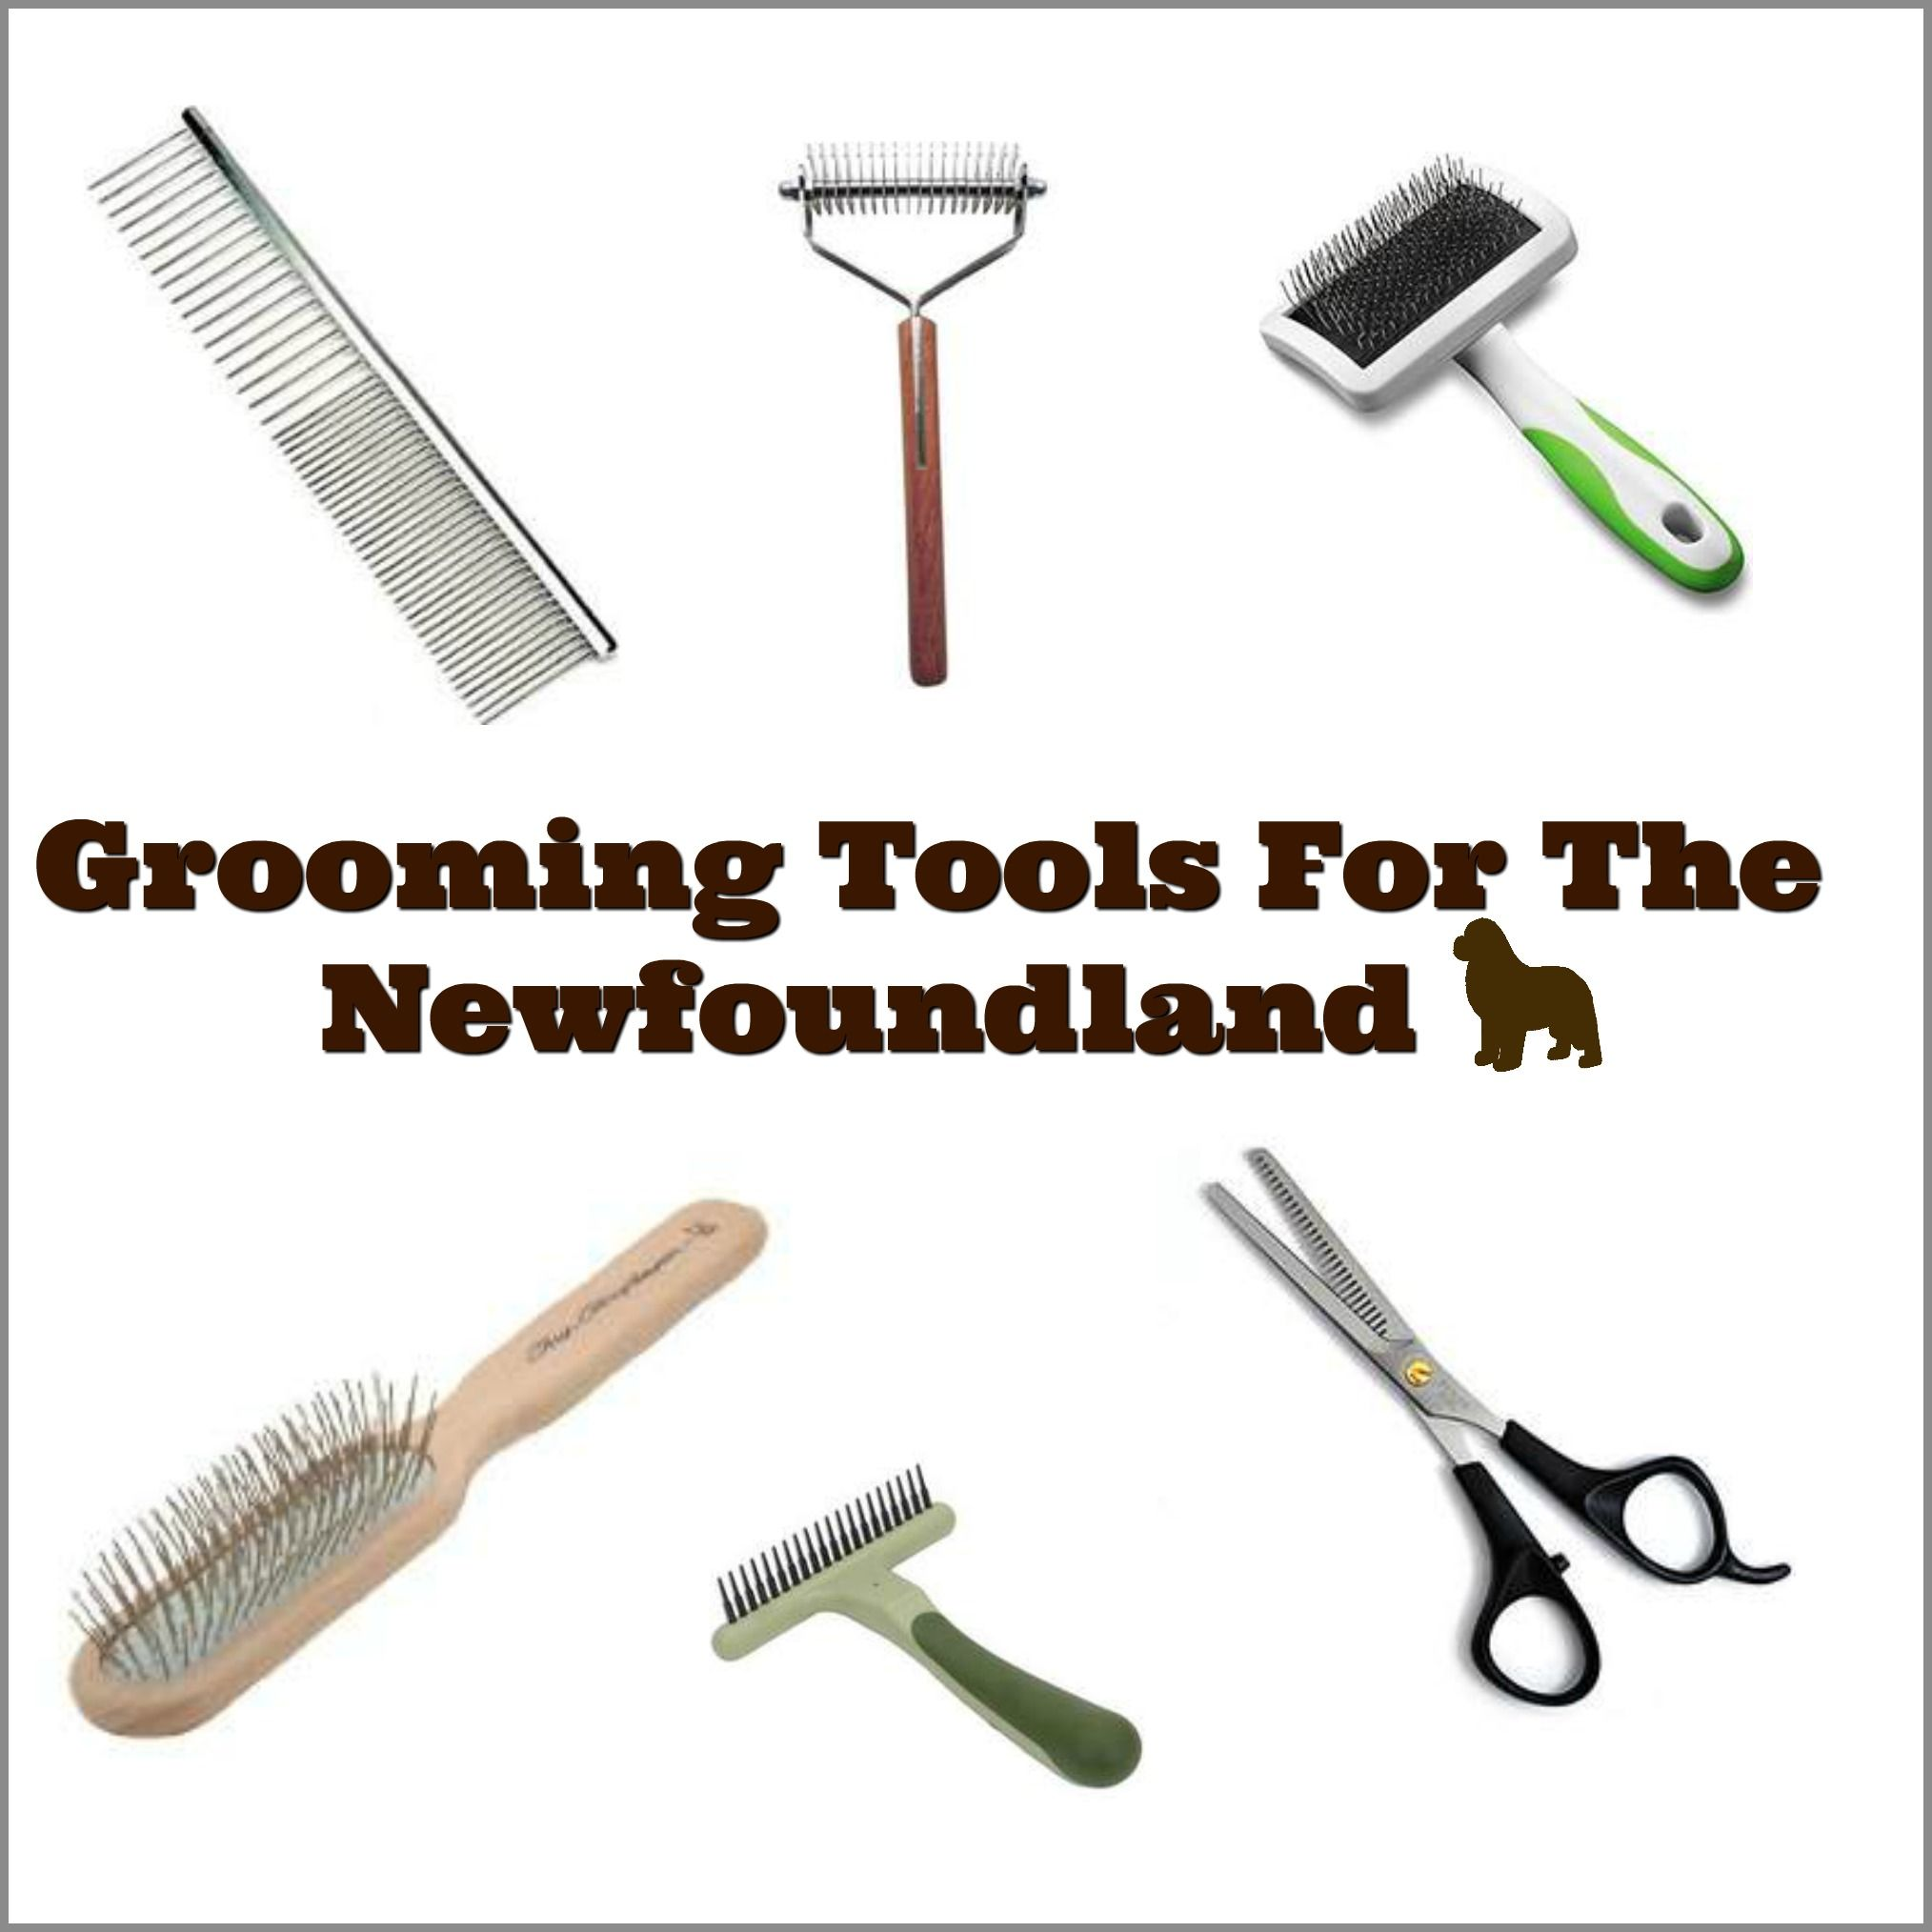 Grooming Tools For The Newfoundland Dog Dog Grooming Tools